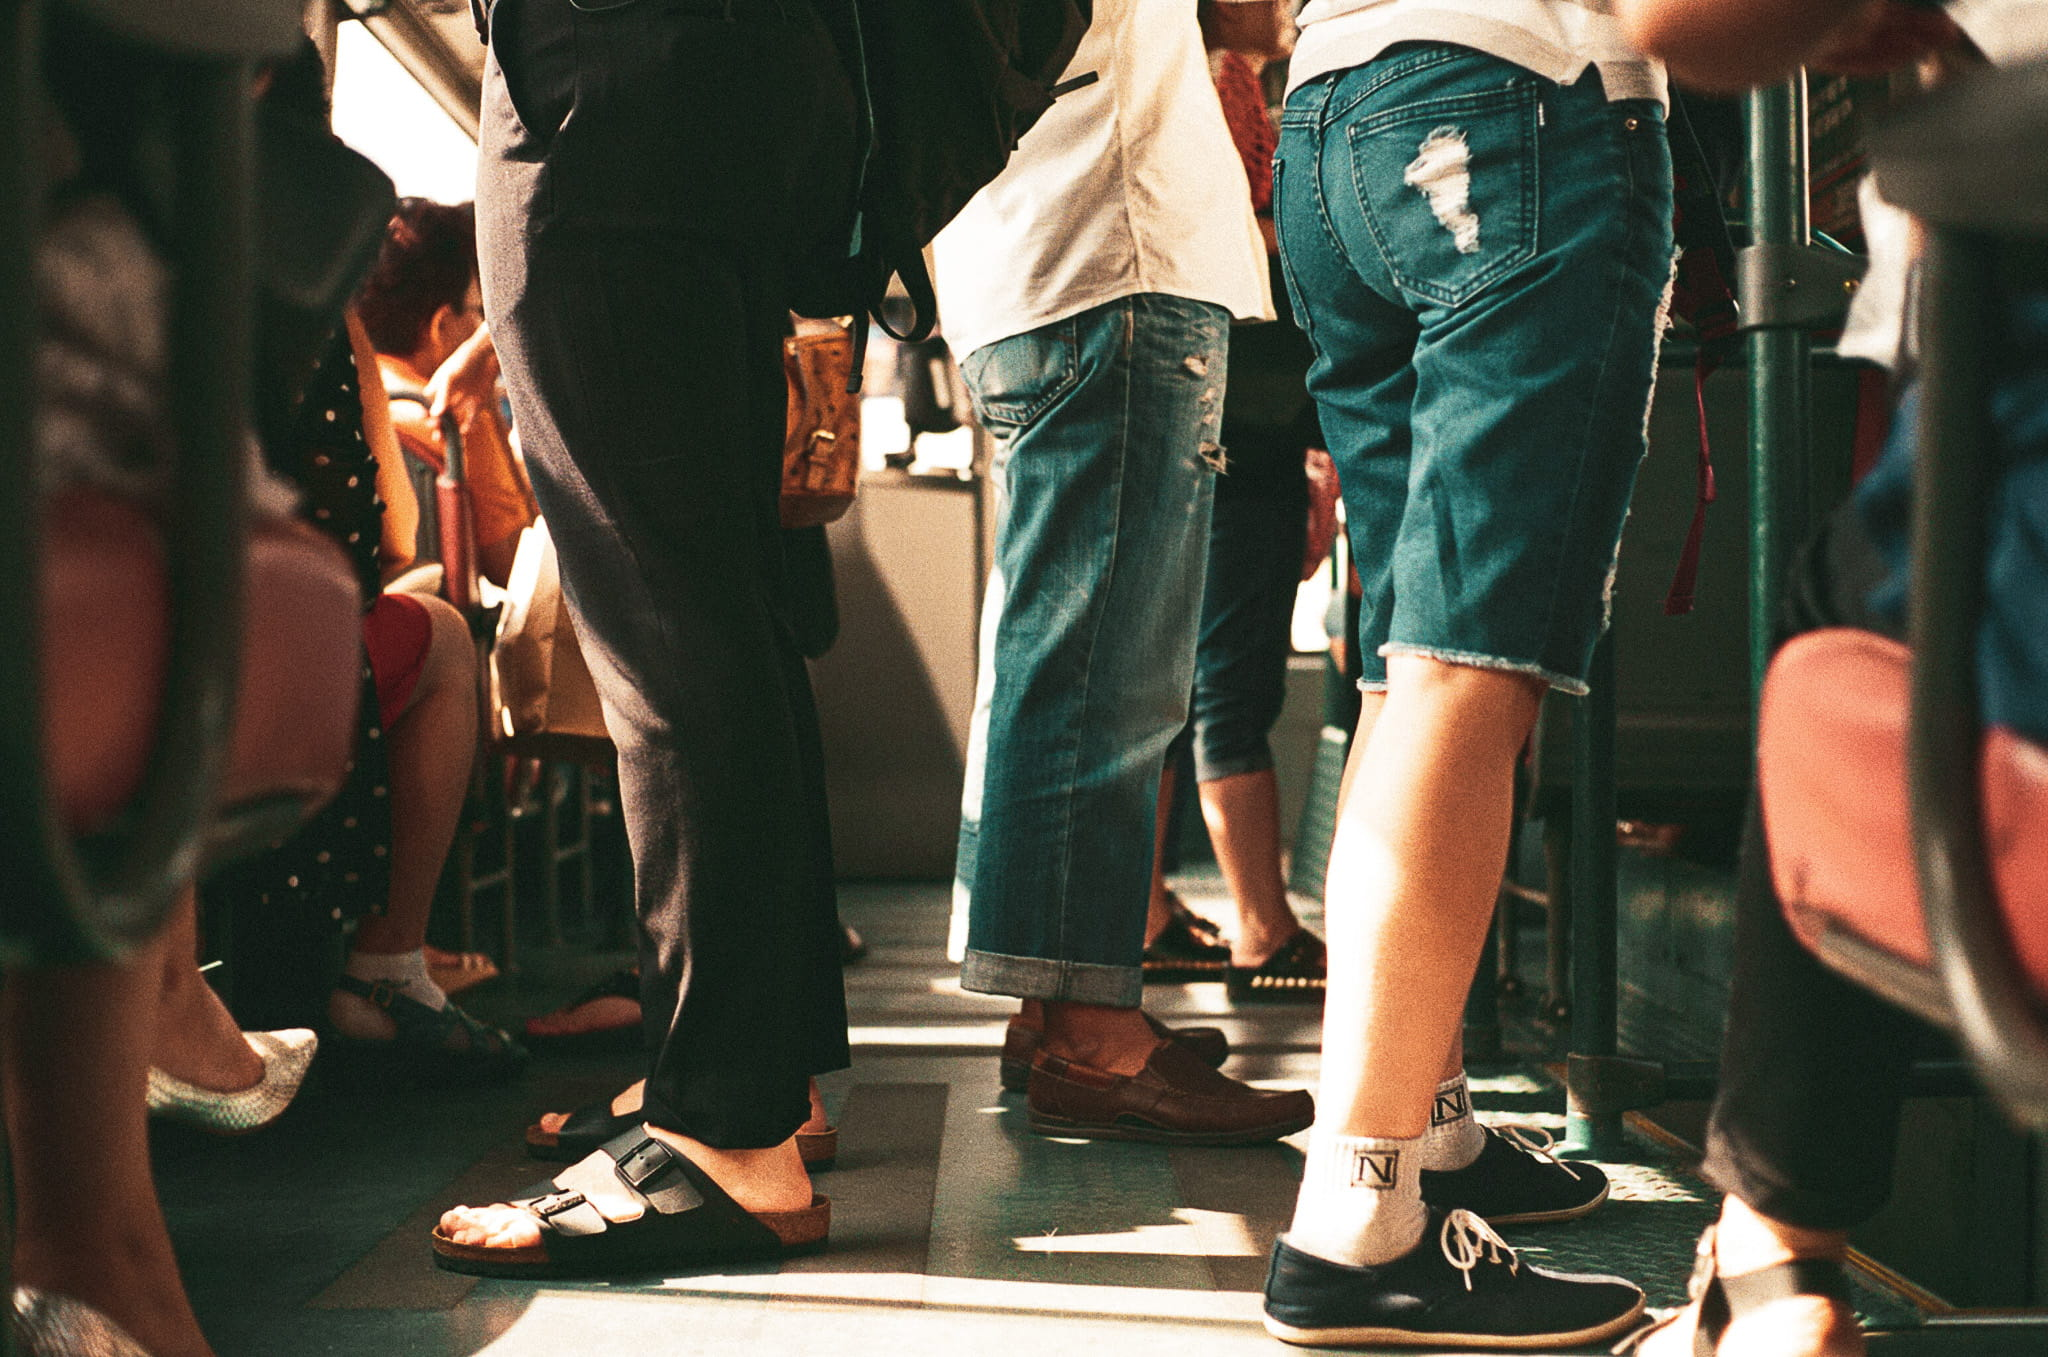 Image of people's legs standing in a crowded place